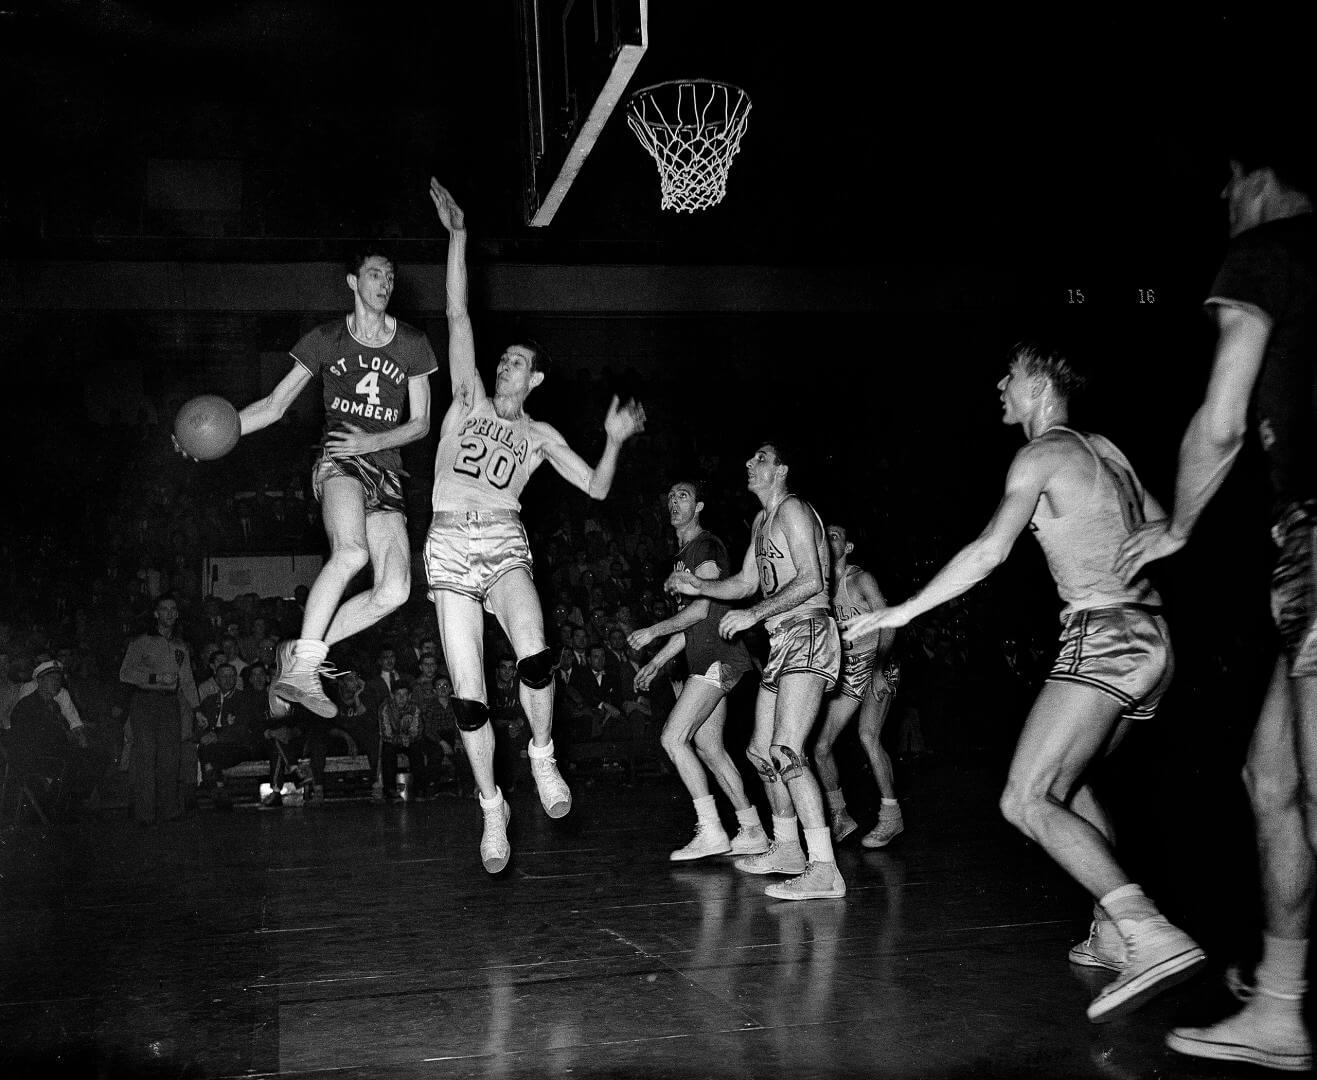 Red Rocha (4), St. Louis Bombers center, goes up in the air to make a pass in Basketball Association of America playoff game with the Philadelphia Warriors at the Arena, March 30, 1948. Chuck Halbert, lanky Warriors center, also leaves the floor in an attempt to block the pass. Others are unidentified. (AP Photo/Warren M. Winterbottom)